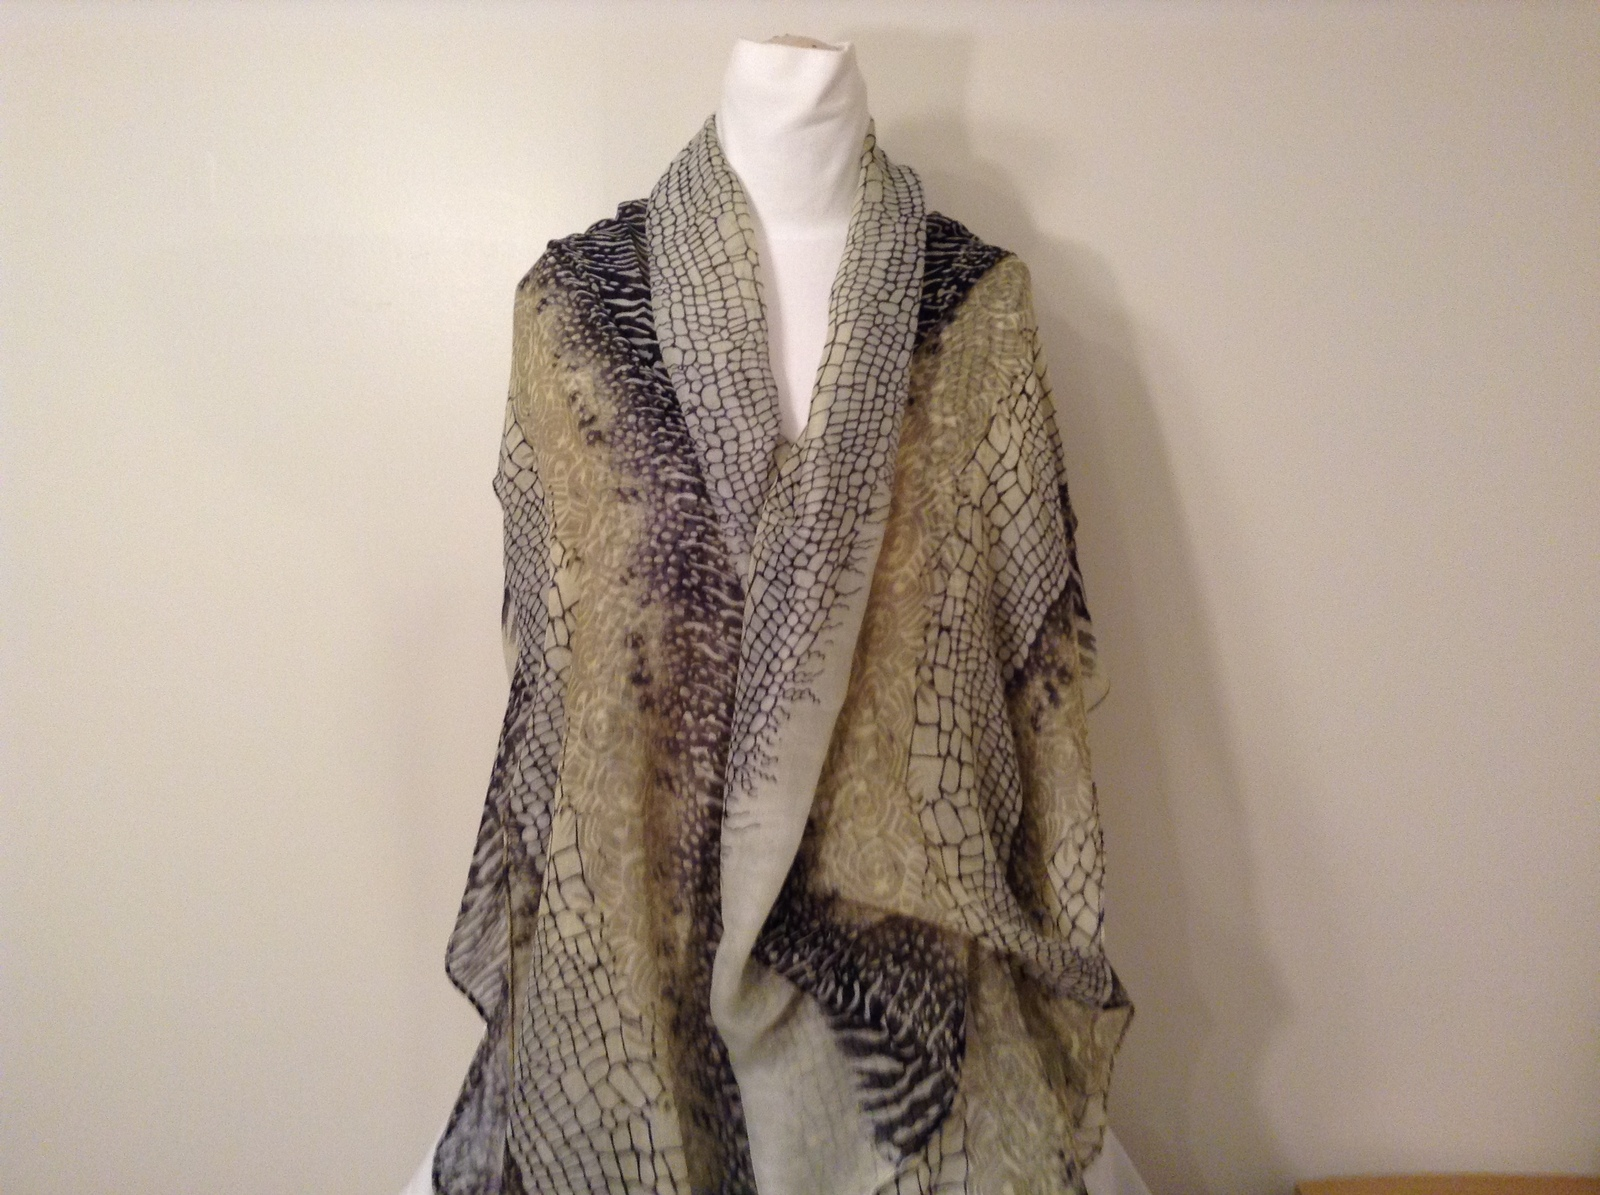 Multi Motives Print Scarf /Shawl Black Gray Light Olive Green 100% Polyester New